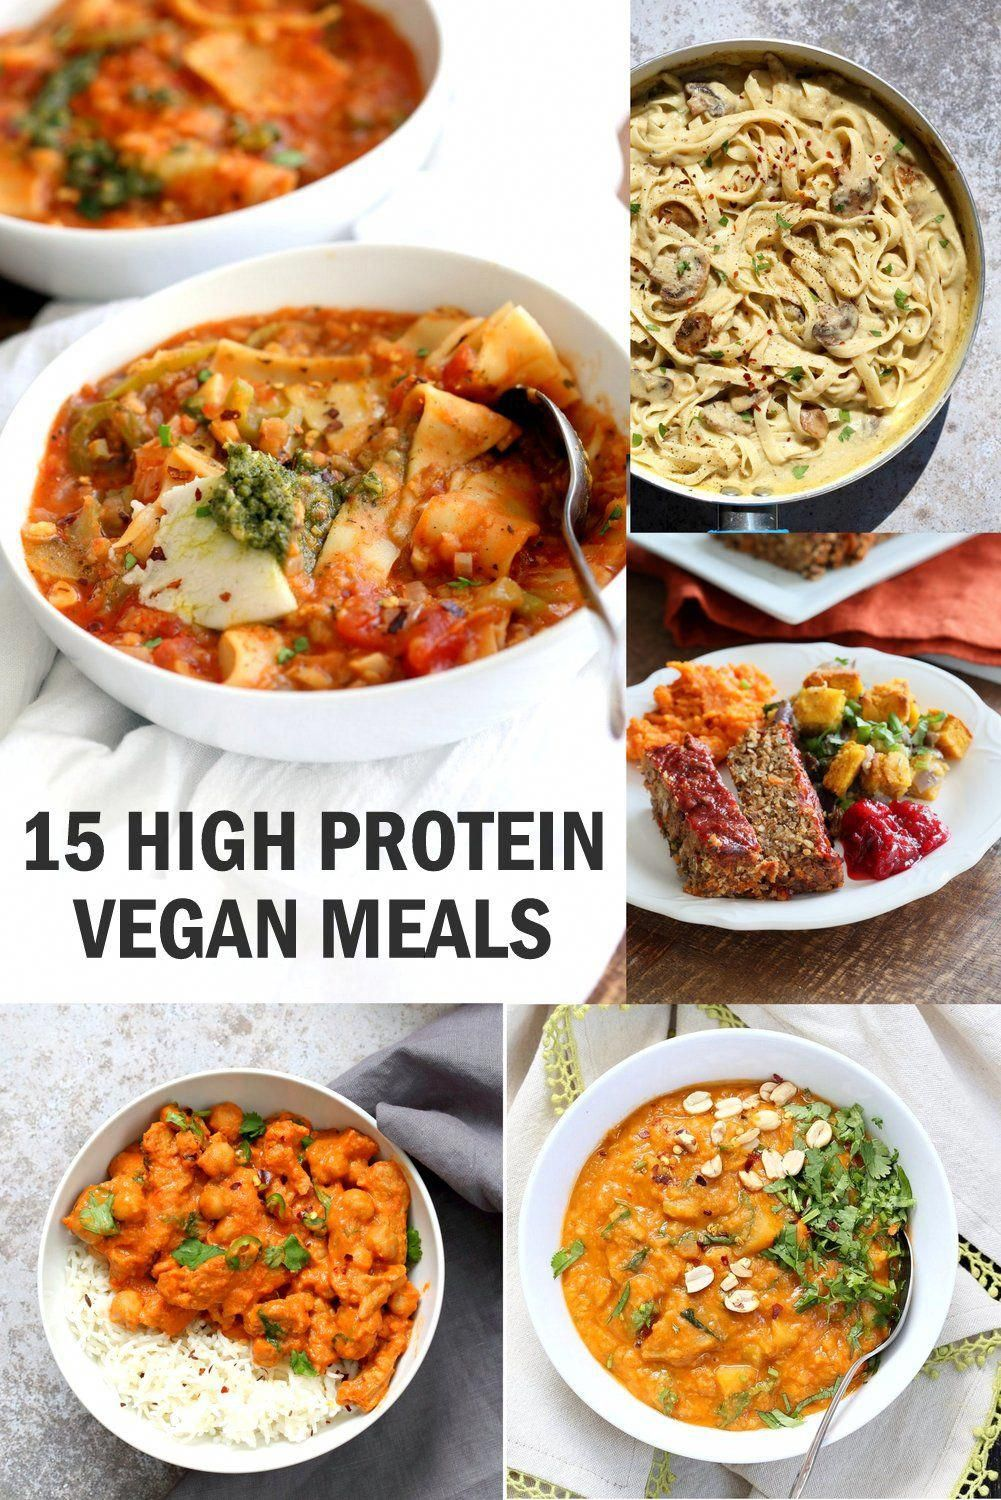 Good Veggie Dishes Home Cooked Vegetarian Meals Homemade Vegetarian Dinn High Protein Vegetarian Recipes High Protein Vegan Recipes Vegetarian High Protein